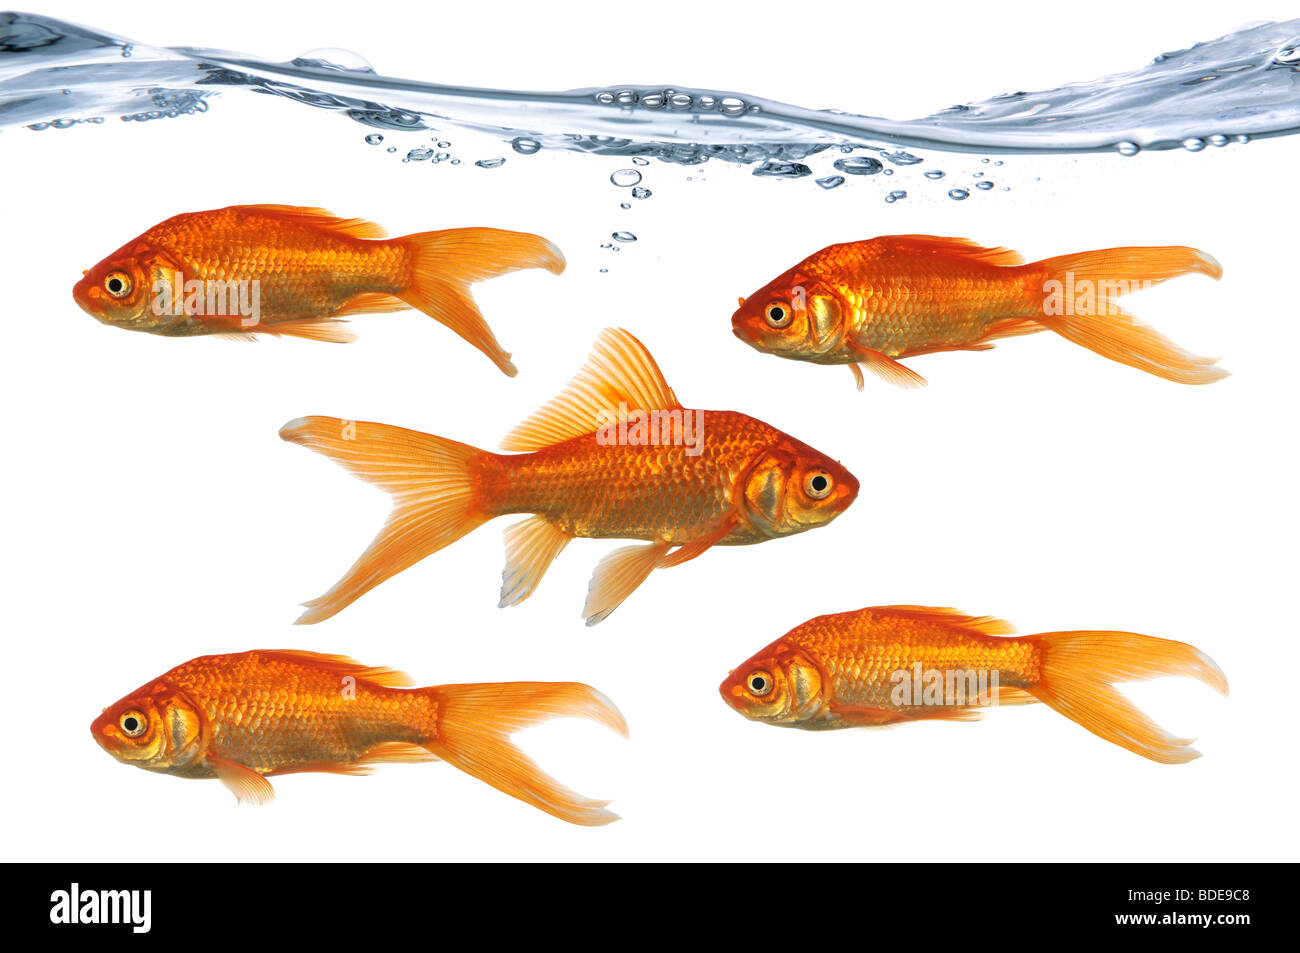 Gold fish swimming in one directions while one swims in the opposite direction - Stock Image